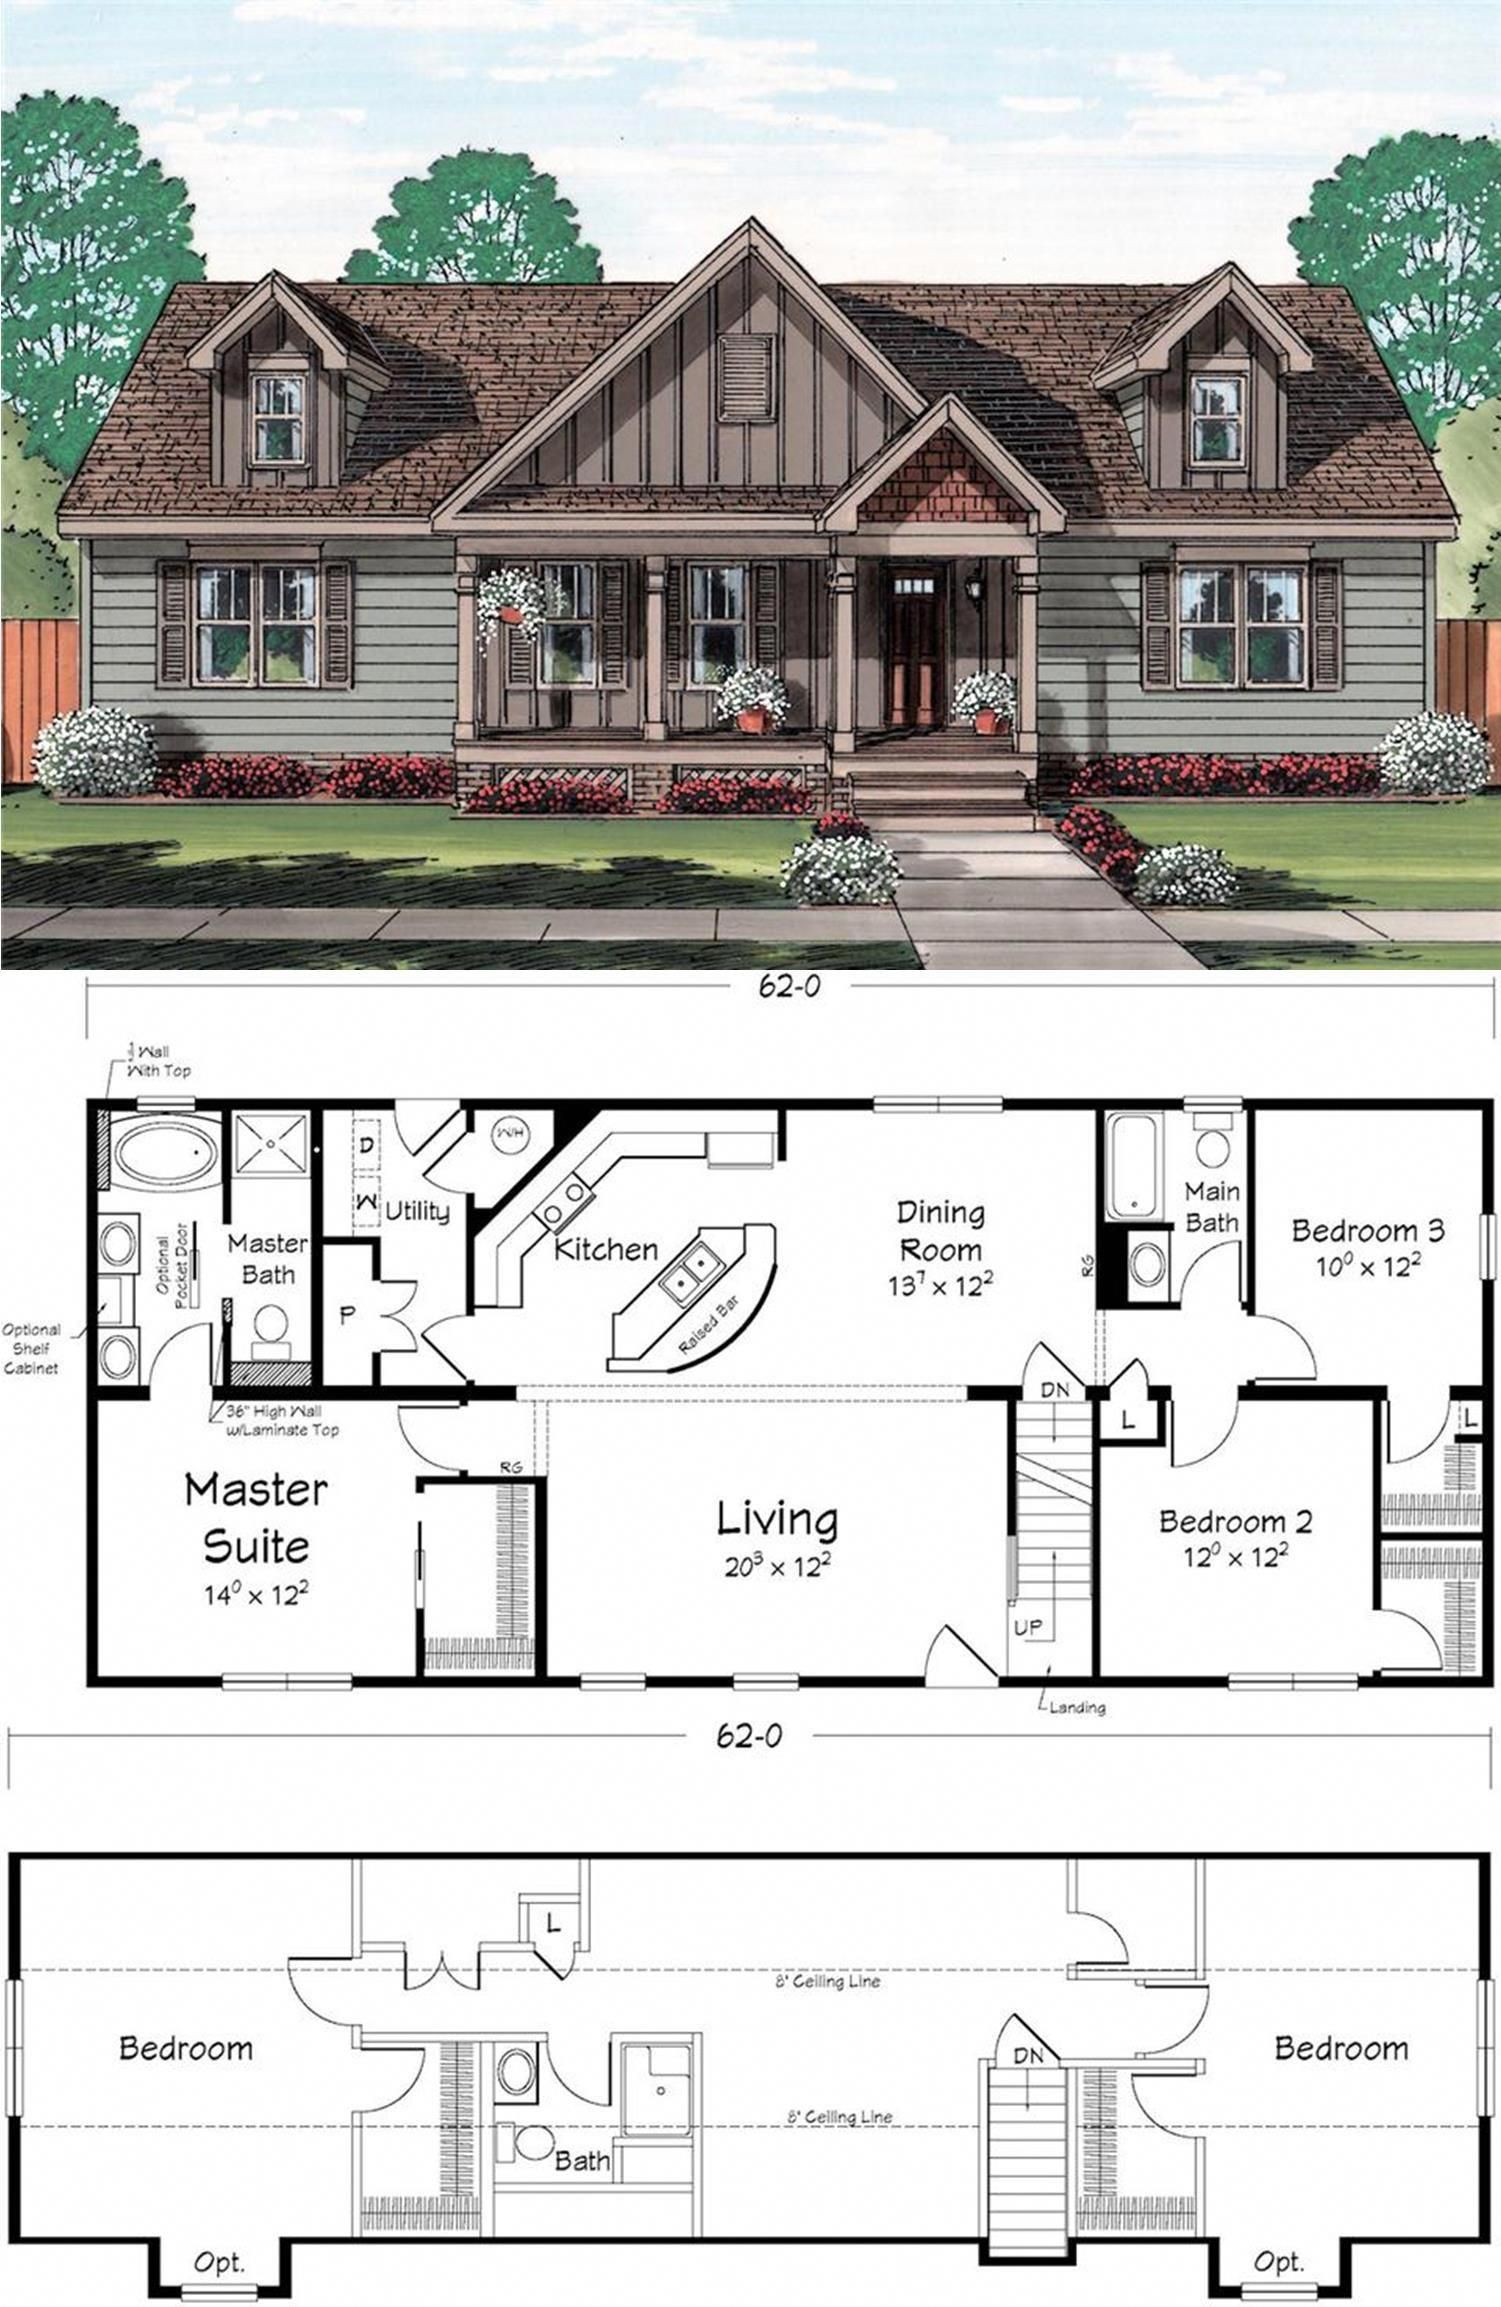 Home Owners Who Enjoy Entertaining Will Love The Additional Space In The Upper Level Of This Cape Code Plan Homeschoolingroom New House Plans House Blueprints Cabin House Plans